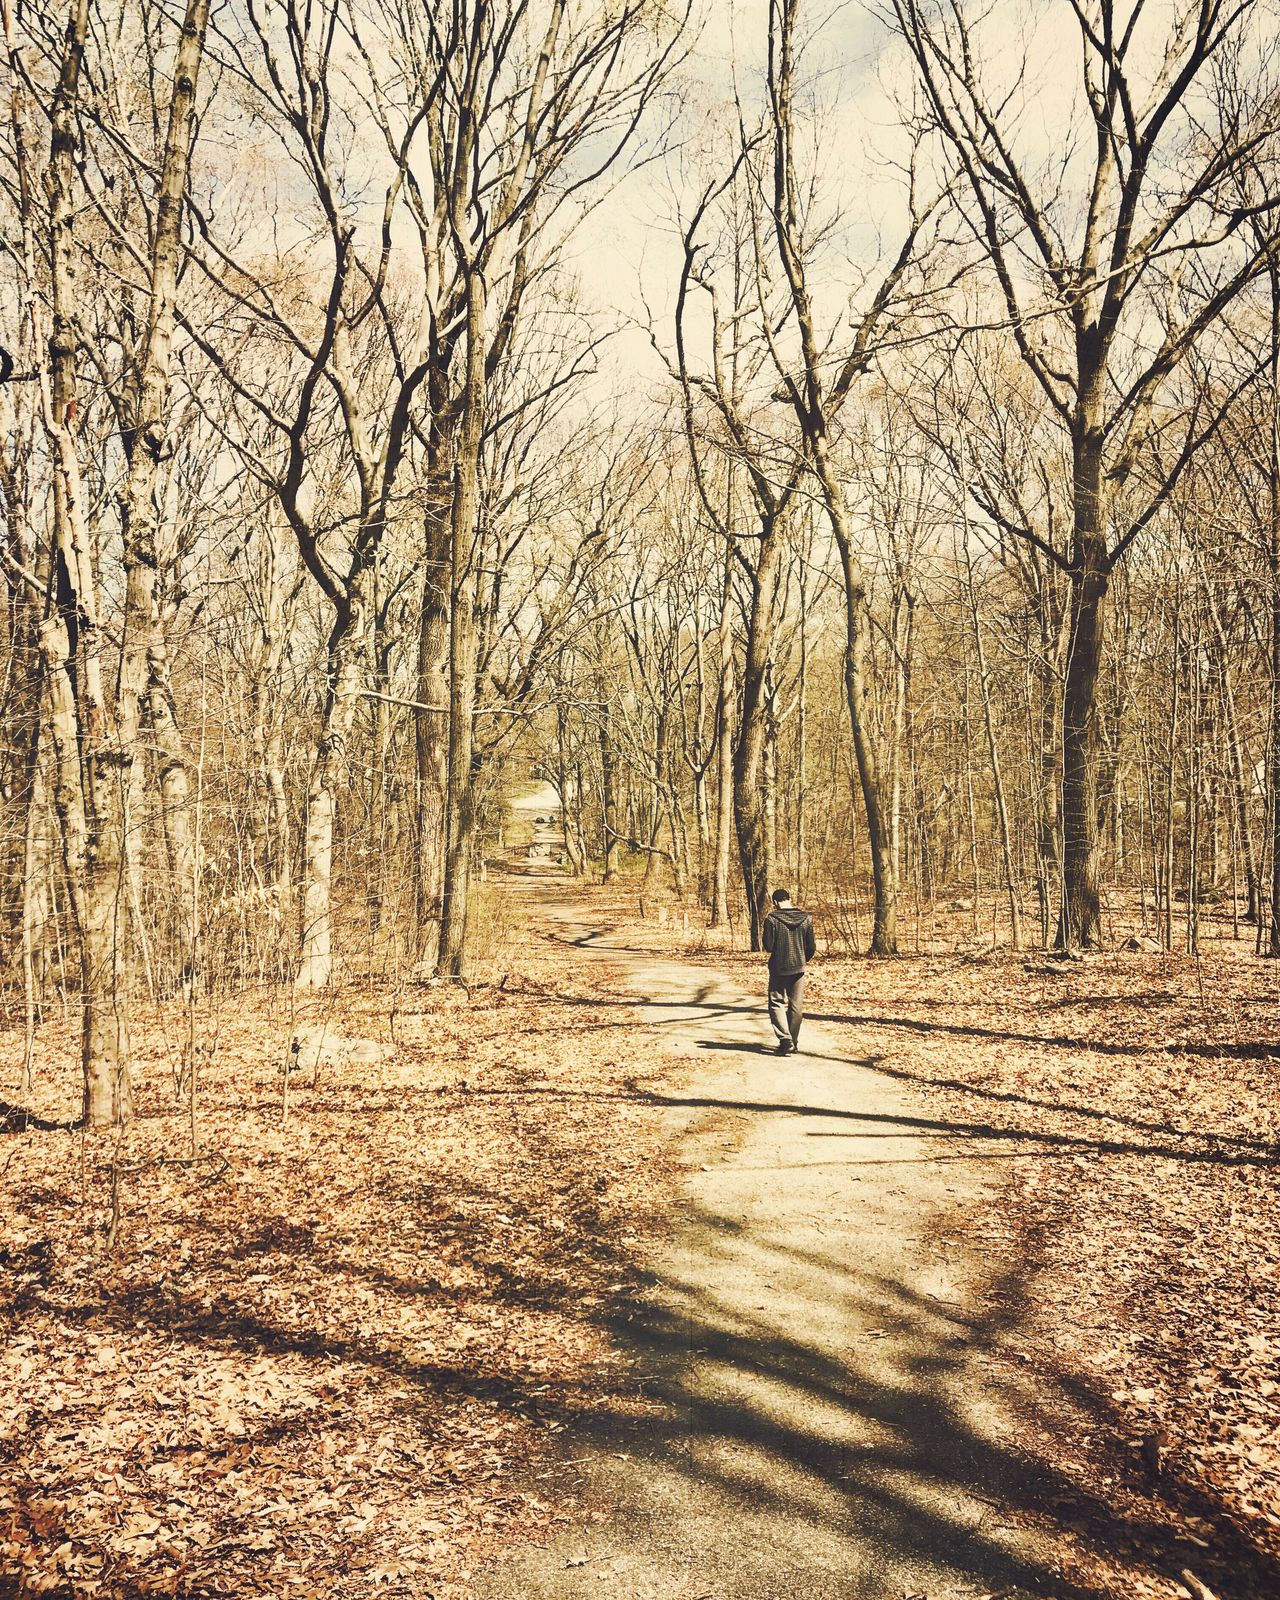 It takes nothing to join the crowd. It takes everything to stand alone. One Person Tree Bare Tree Nature Leisure Activity Sunlight Outdoors Men Day One Man Only Branch Trail Hike Woods Woodlands Spring Park